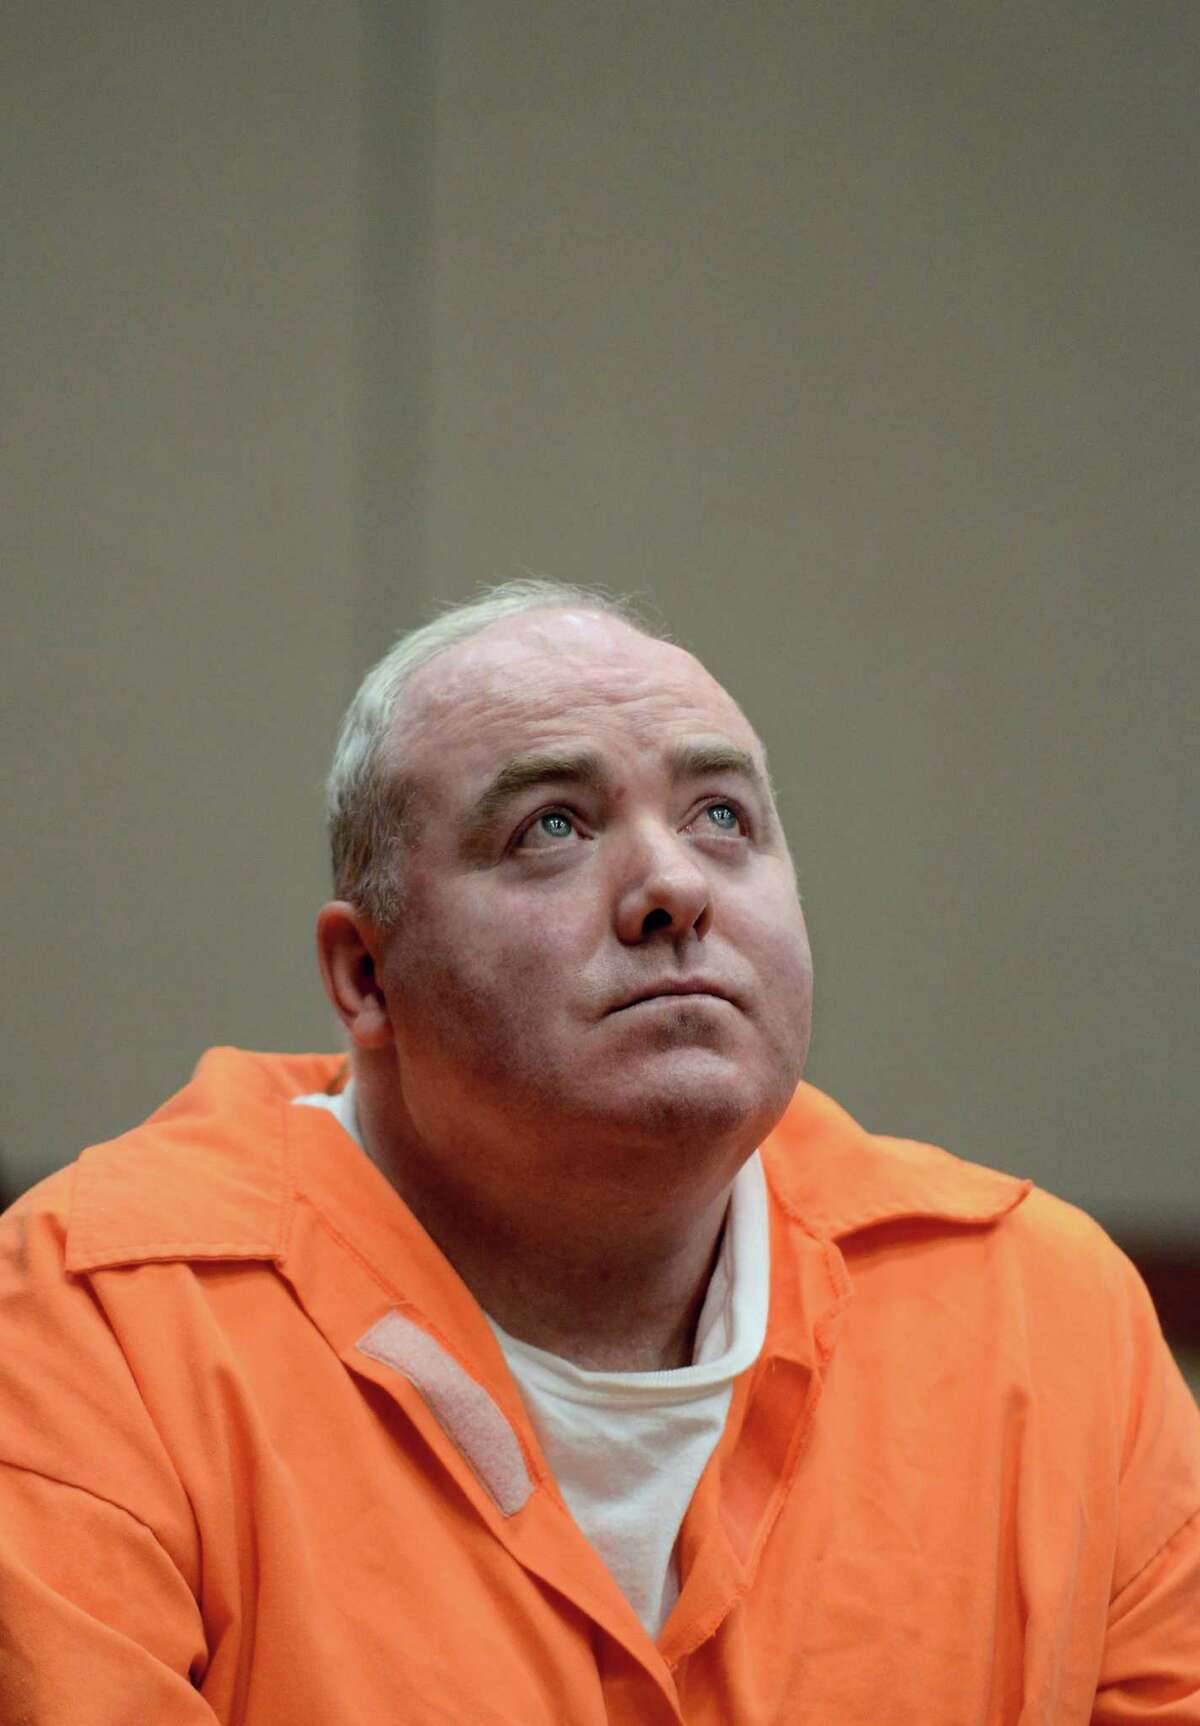 Michael Skakel looks up while listening to a statement from John Moxley, brother of victim Martha Moxley in court in Middletown, Conn., Tuesday, Jan. 24, 2012. Skakel has a parole board hearing scheduled for Wednesday, Oct. 24, 2012. (AP Photo/Jessica Hill, Pool)